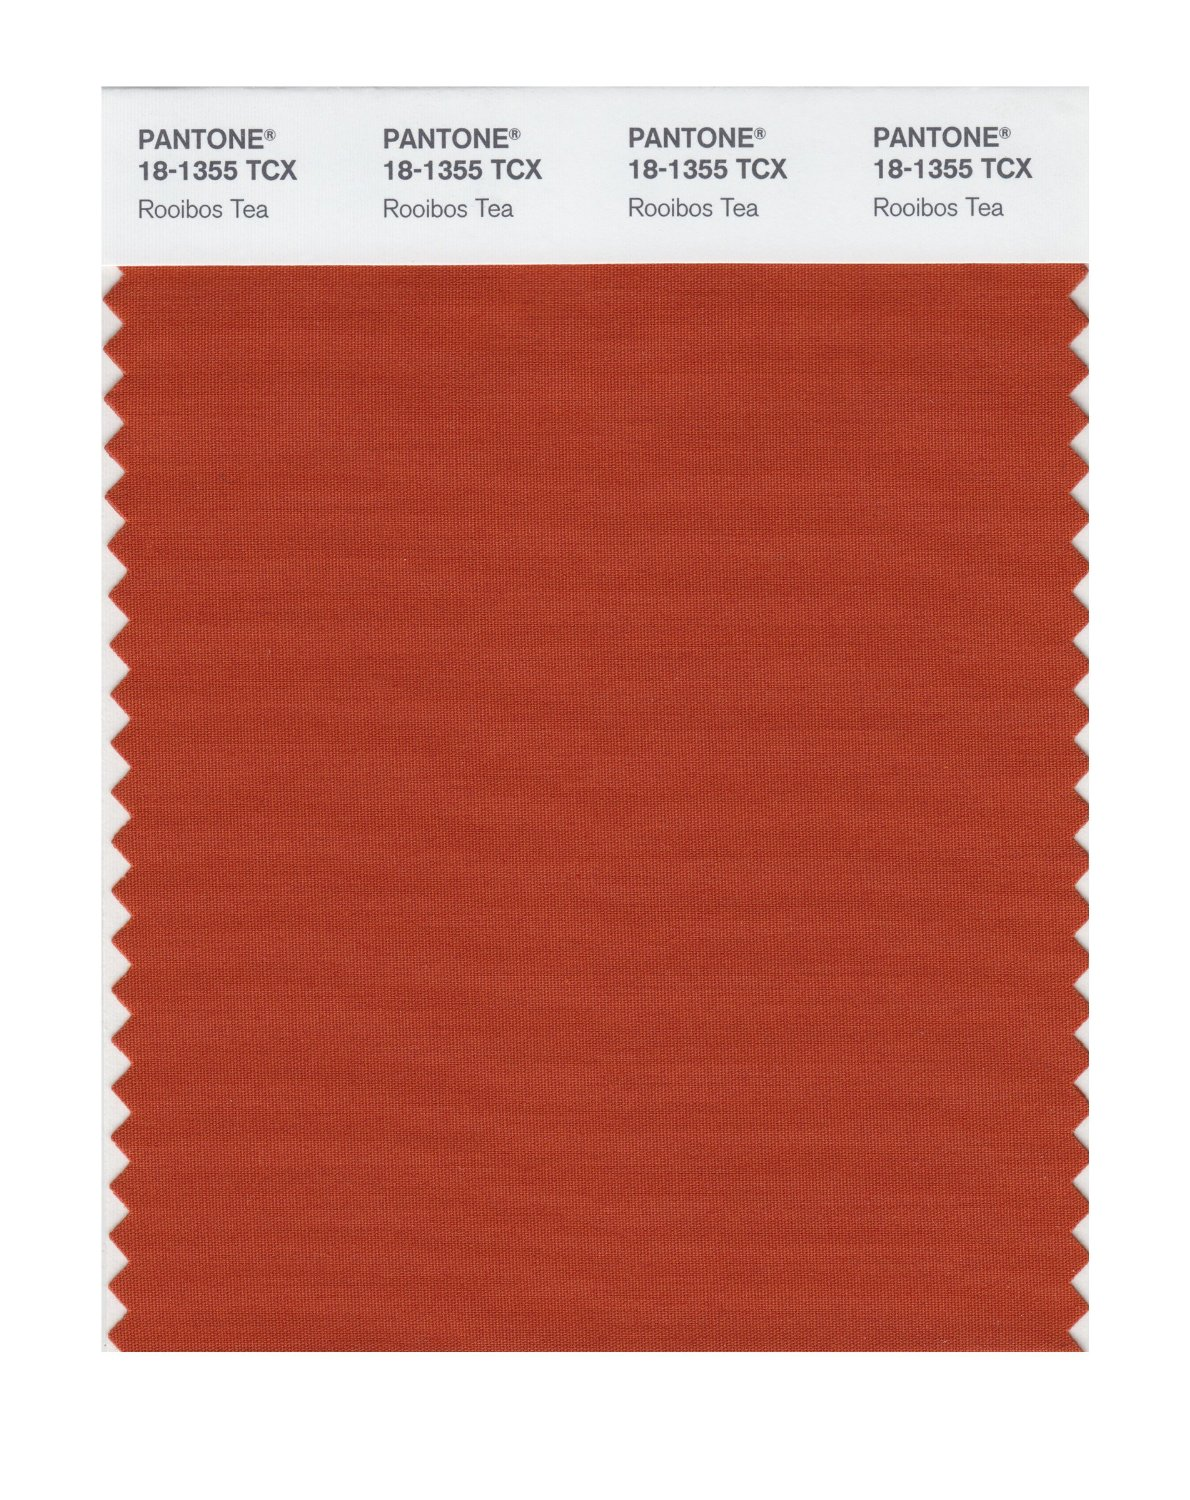 Pantone Smart Swatch 18-1355 Rooibos Tea